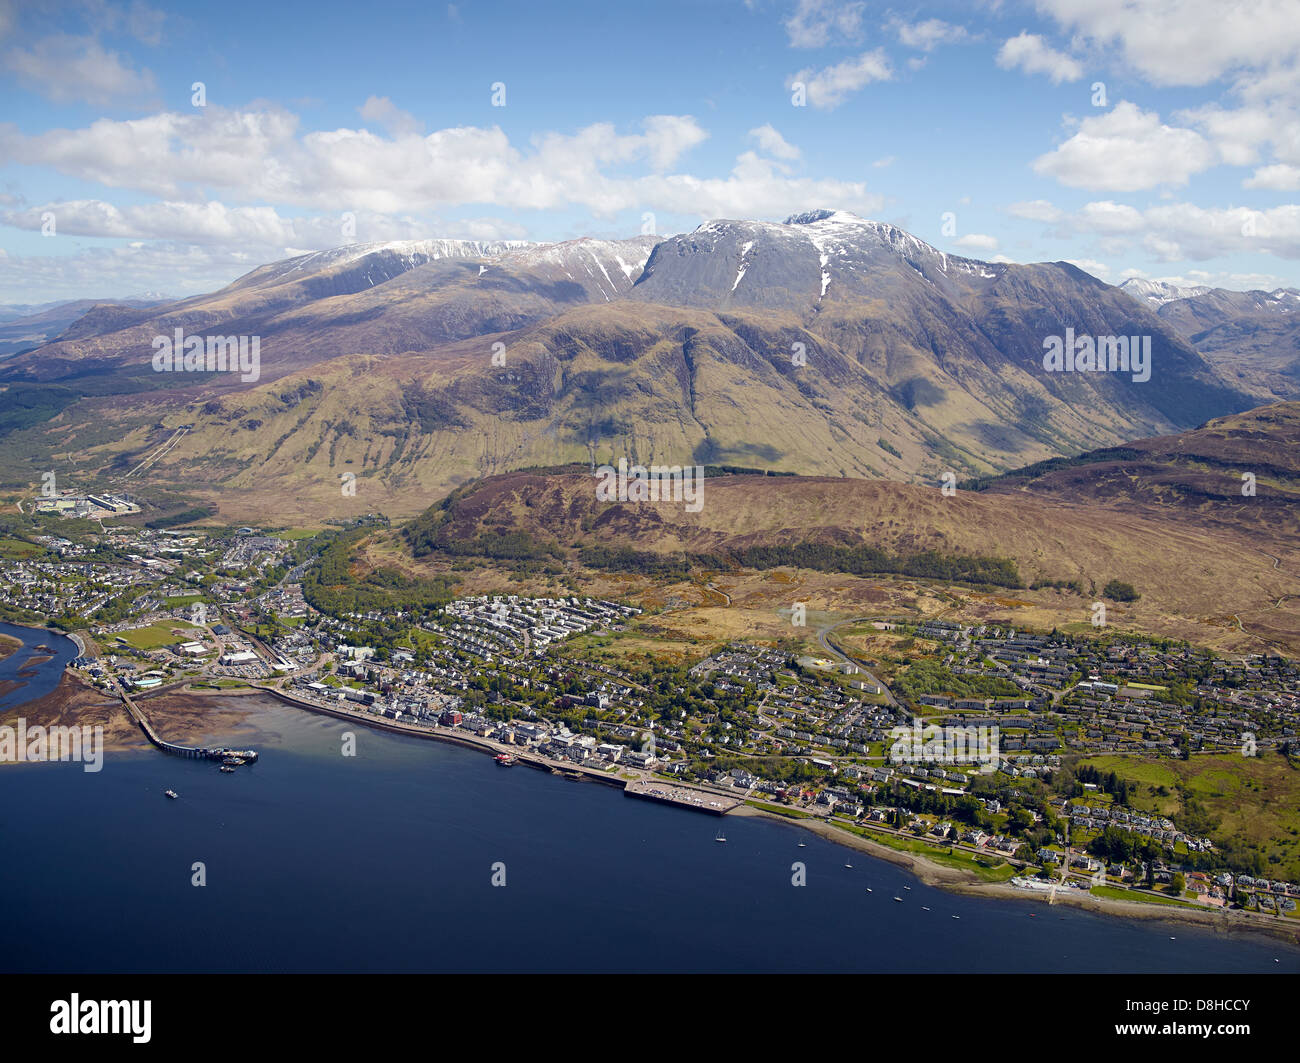 aerial drone video with Stock Photo Ben Nevis And Fort William From The Air North West Highland Scotland 56931307 on Drei Neue Ipad Hintergrundbilder In Ios 10 3 together with Army Confirms Black Hawk Drone Collided Over New York City additionally Page furthermore Uruena 2 additionally Lake Chelan Wa Usa.